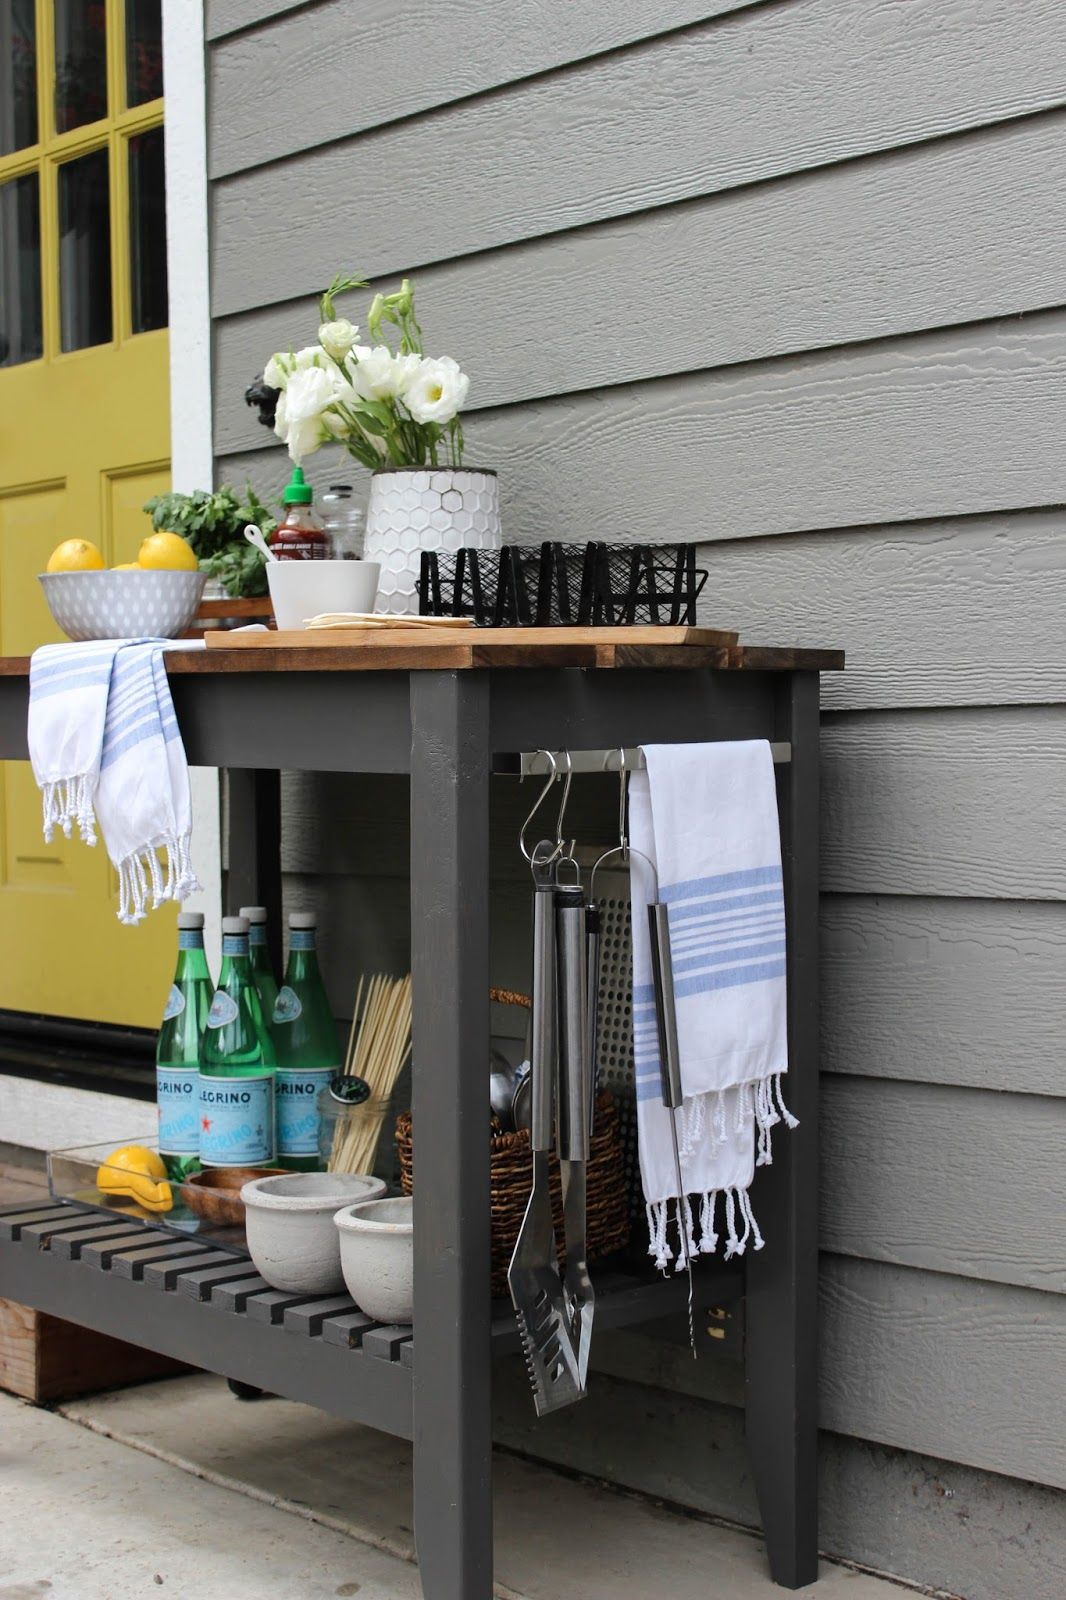 Chic Little House Diy Bbq Grill Cart This Could Easily Be An Ikea Hack